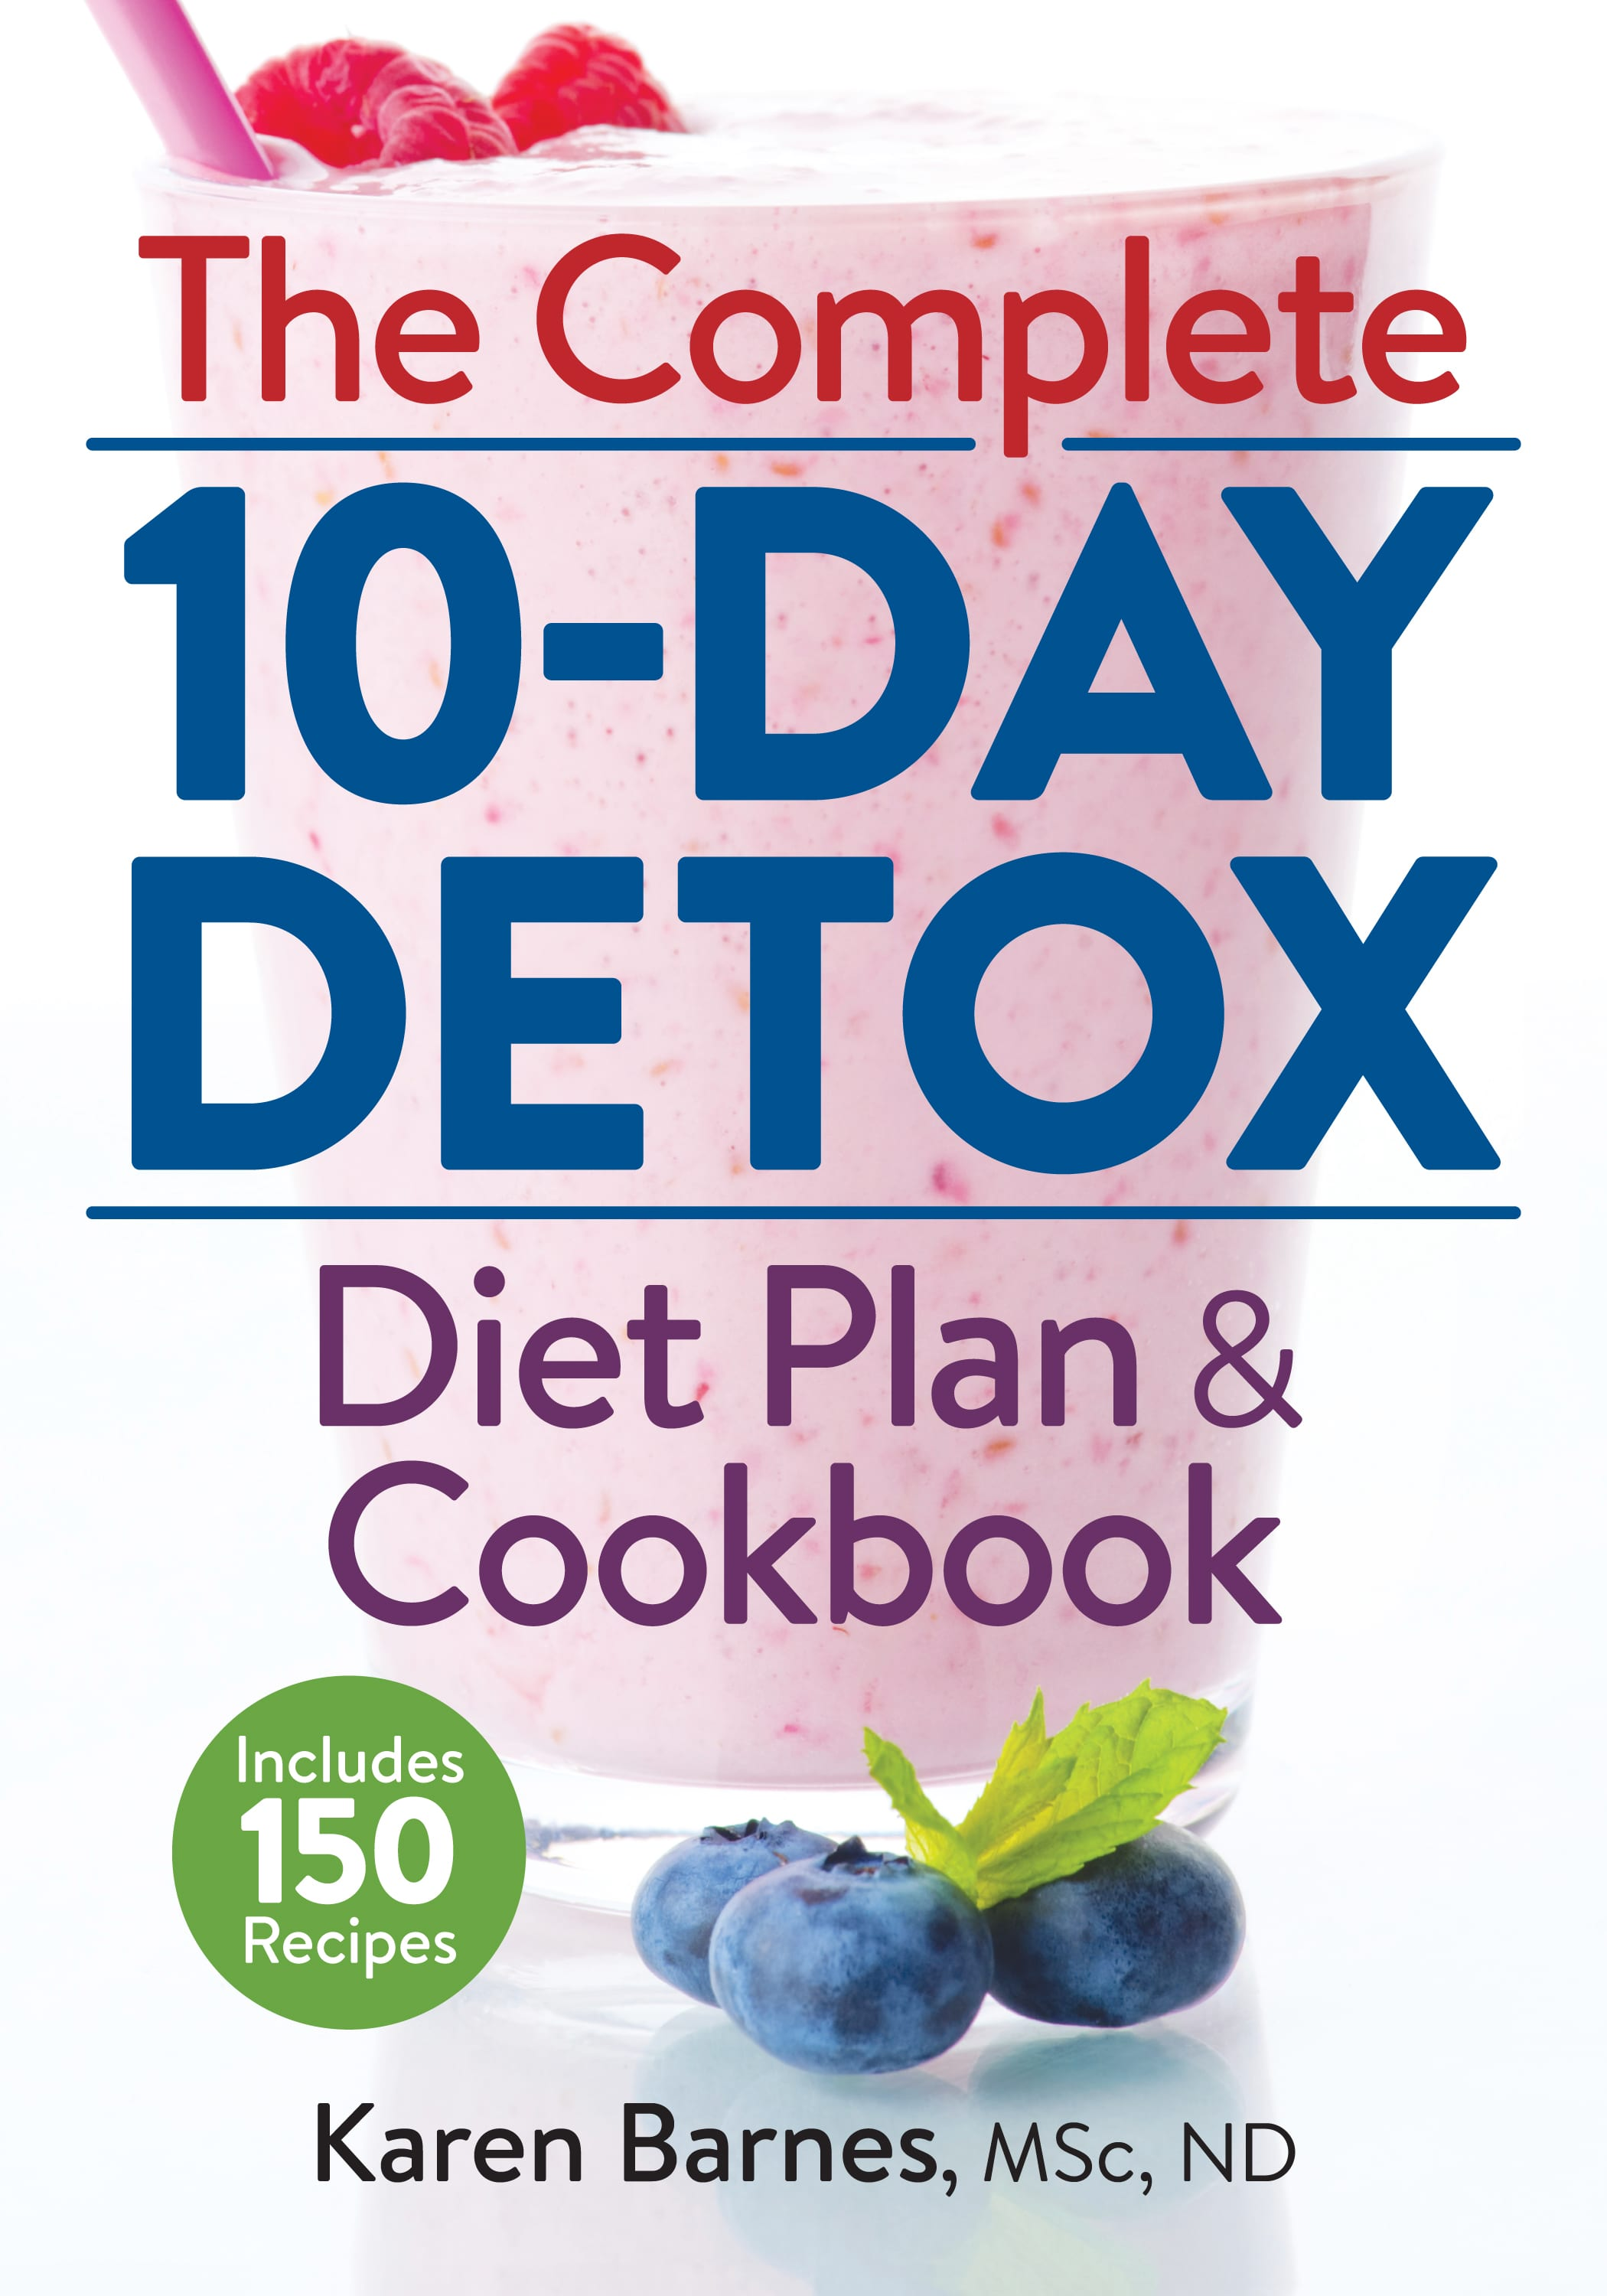 Book Review: The Complete 10-Day Detox